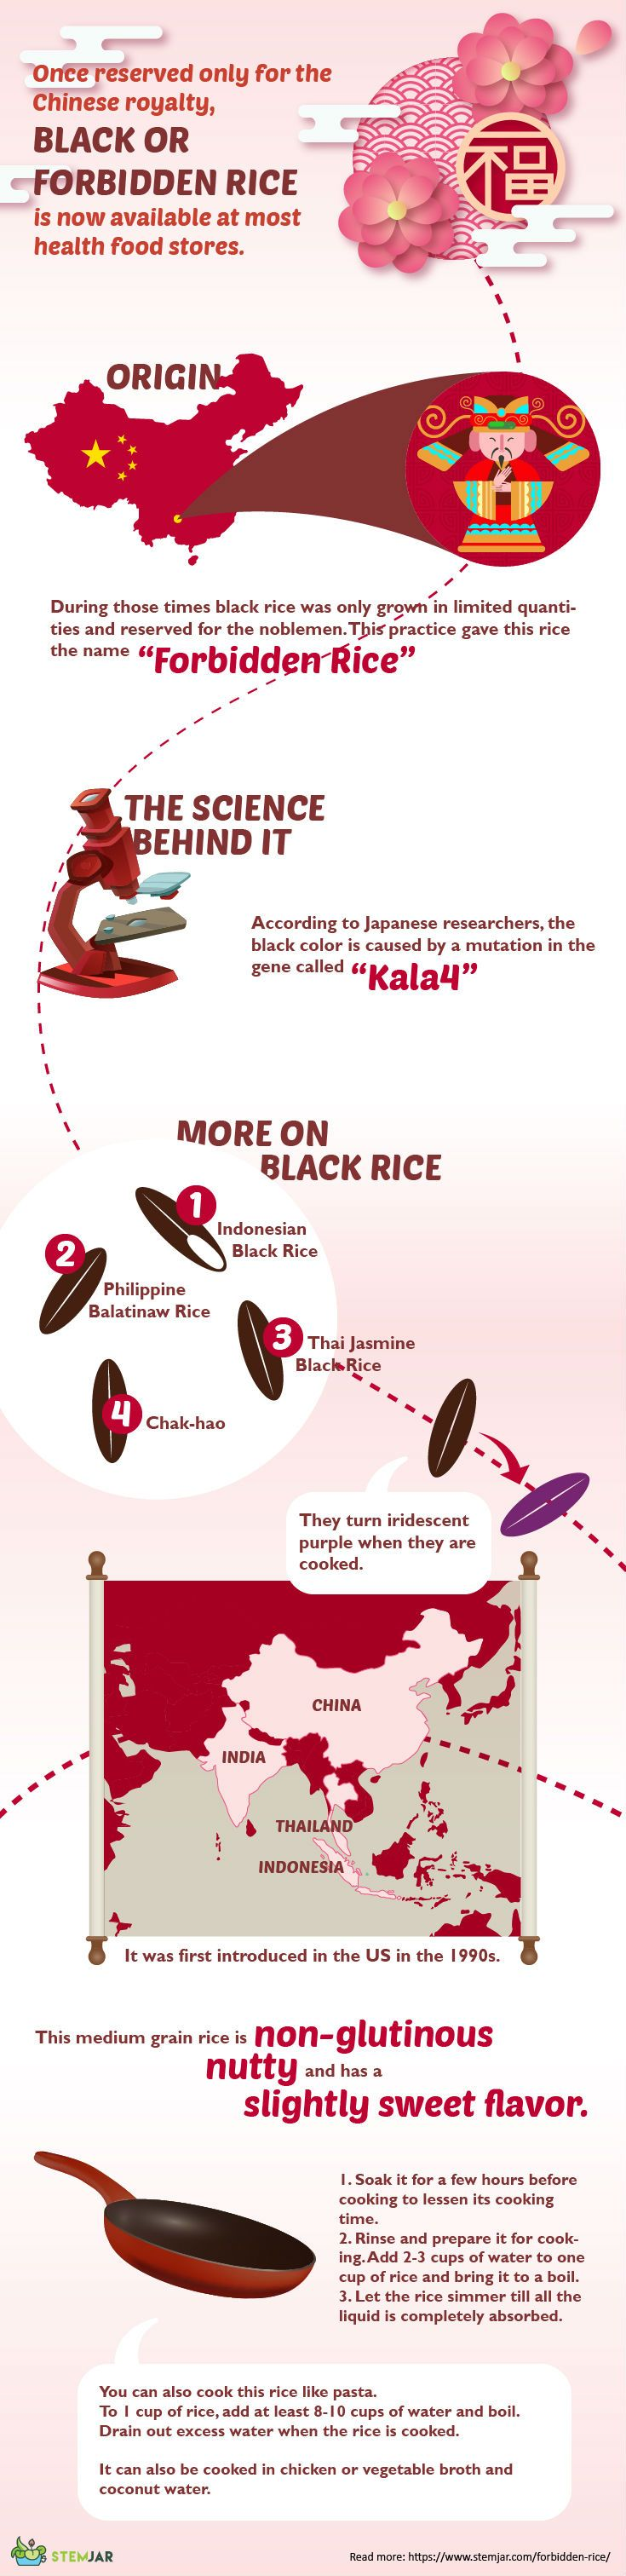 10 Impressive Health Benefits of Black or Forbidden Rice #eggnutritionfacts